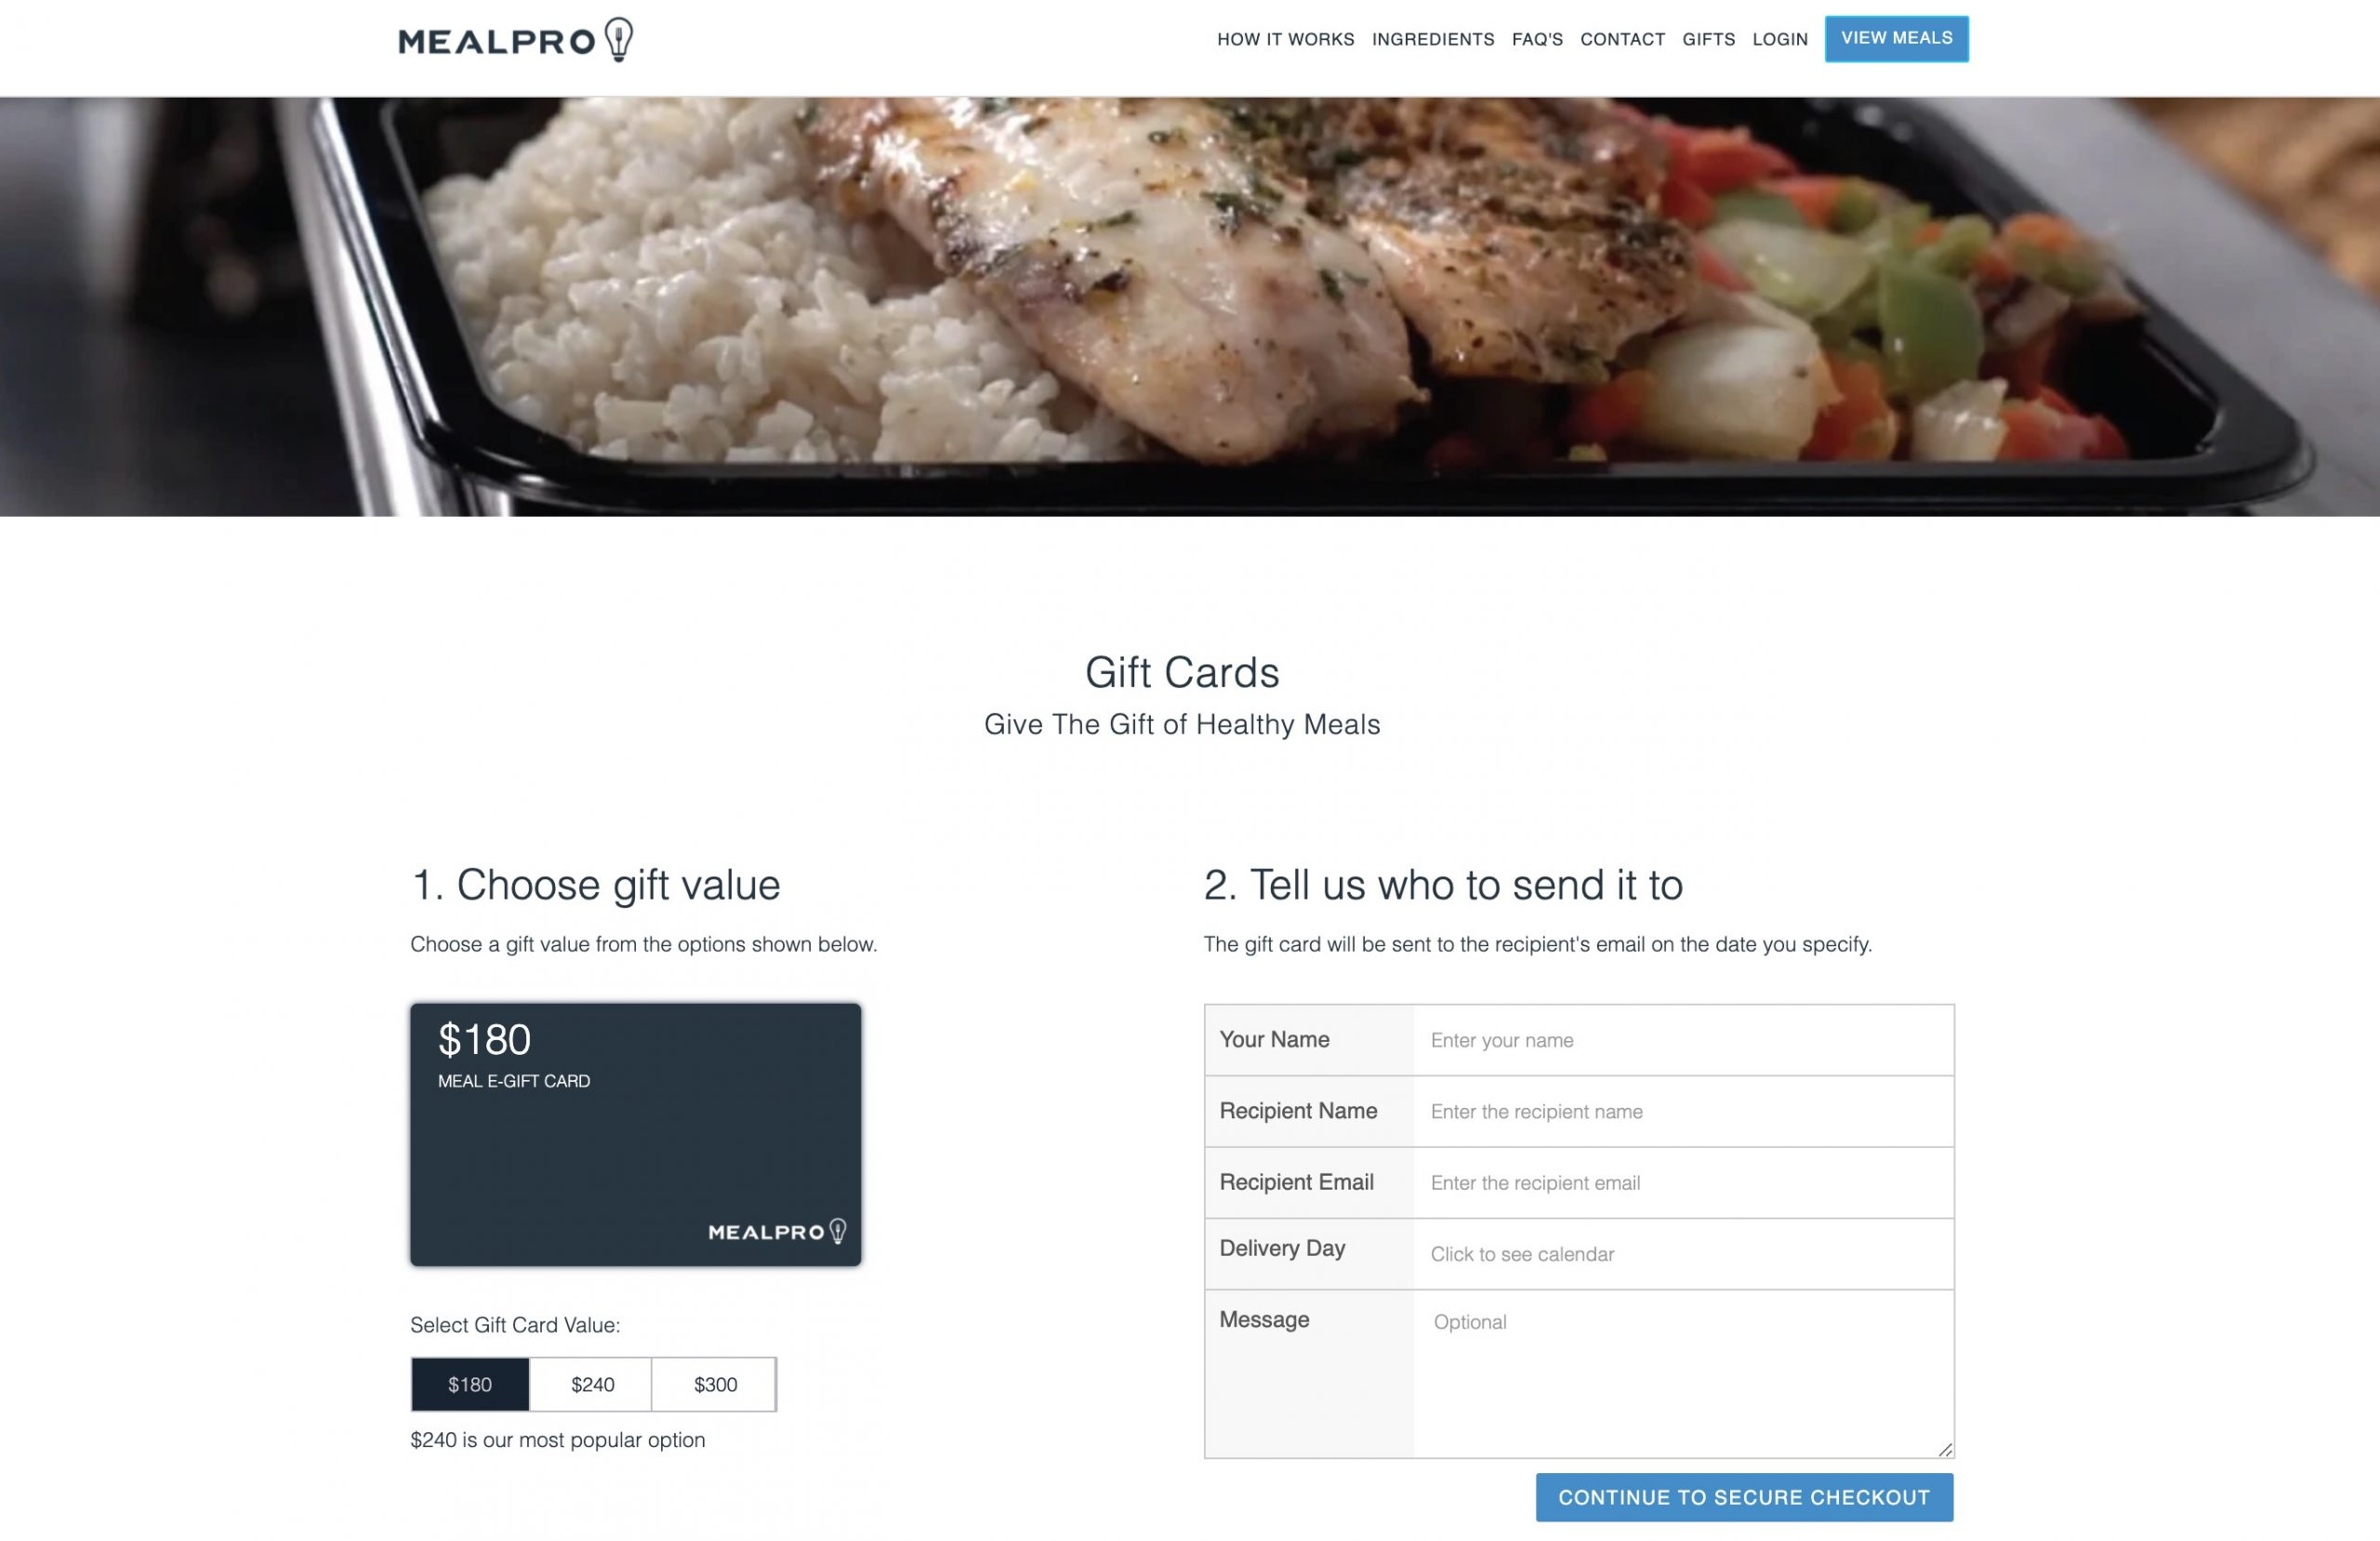 MealPro gift card